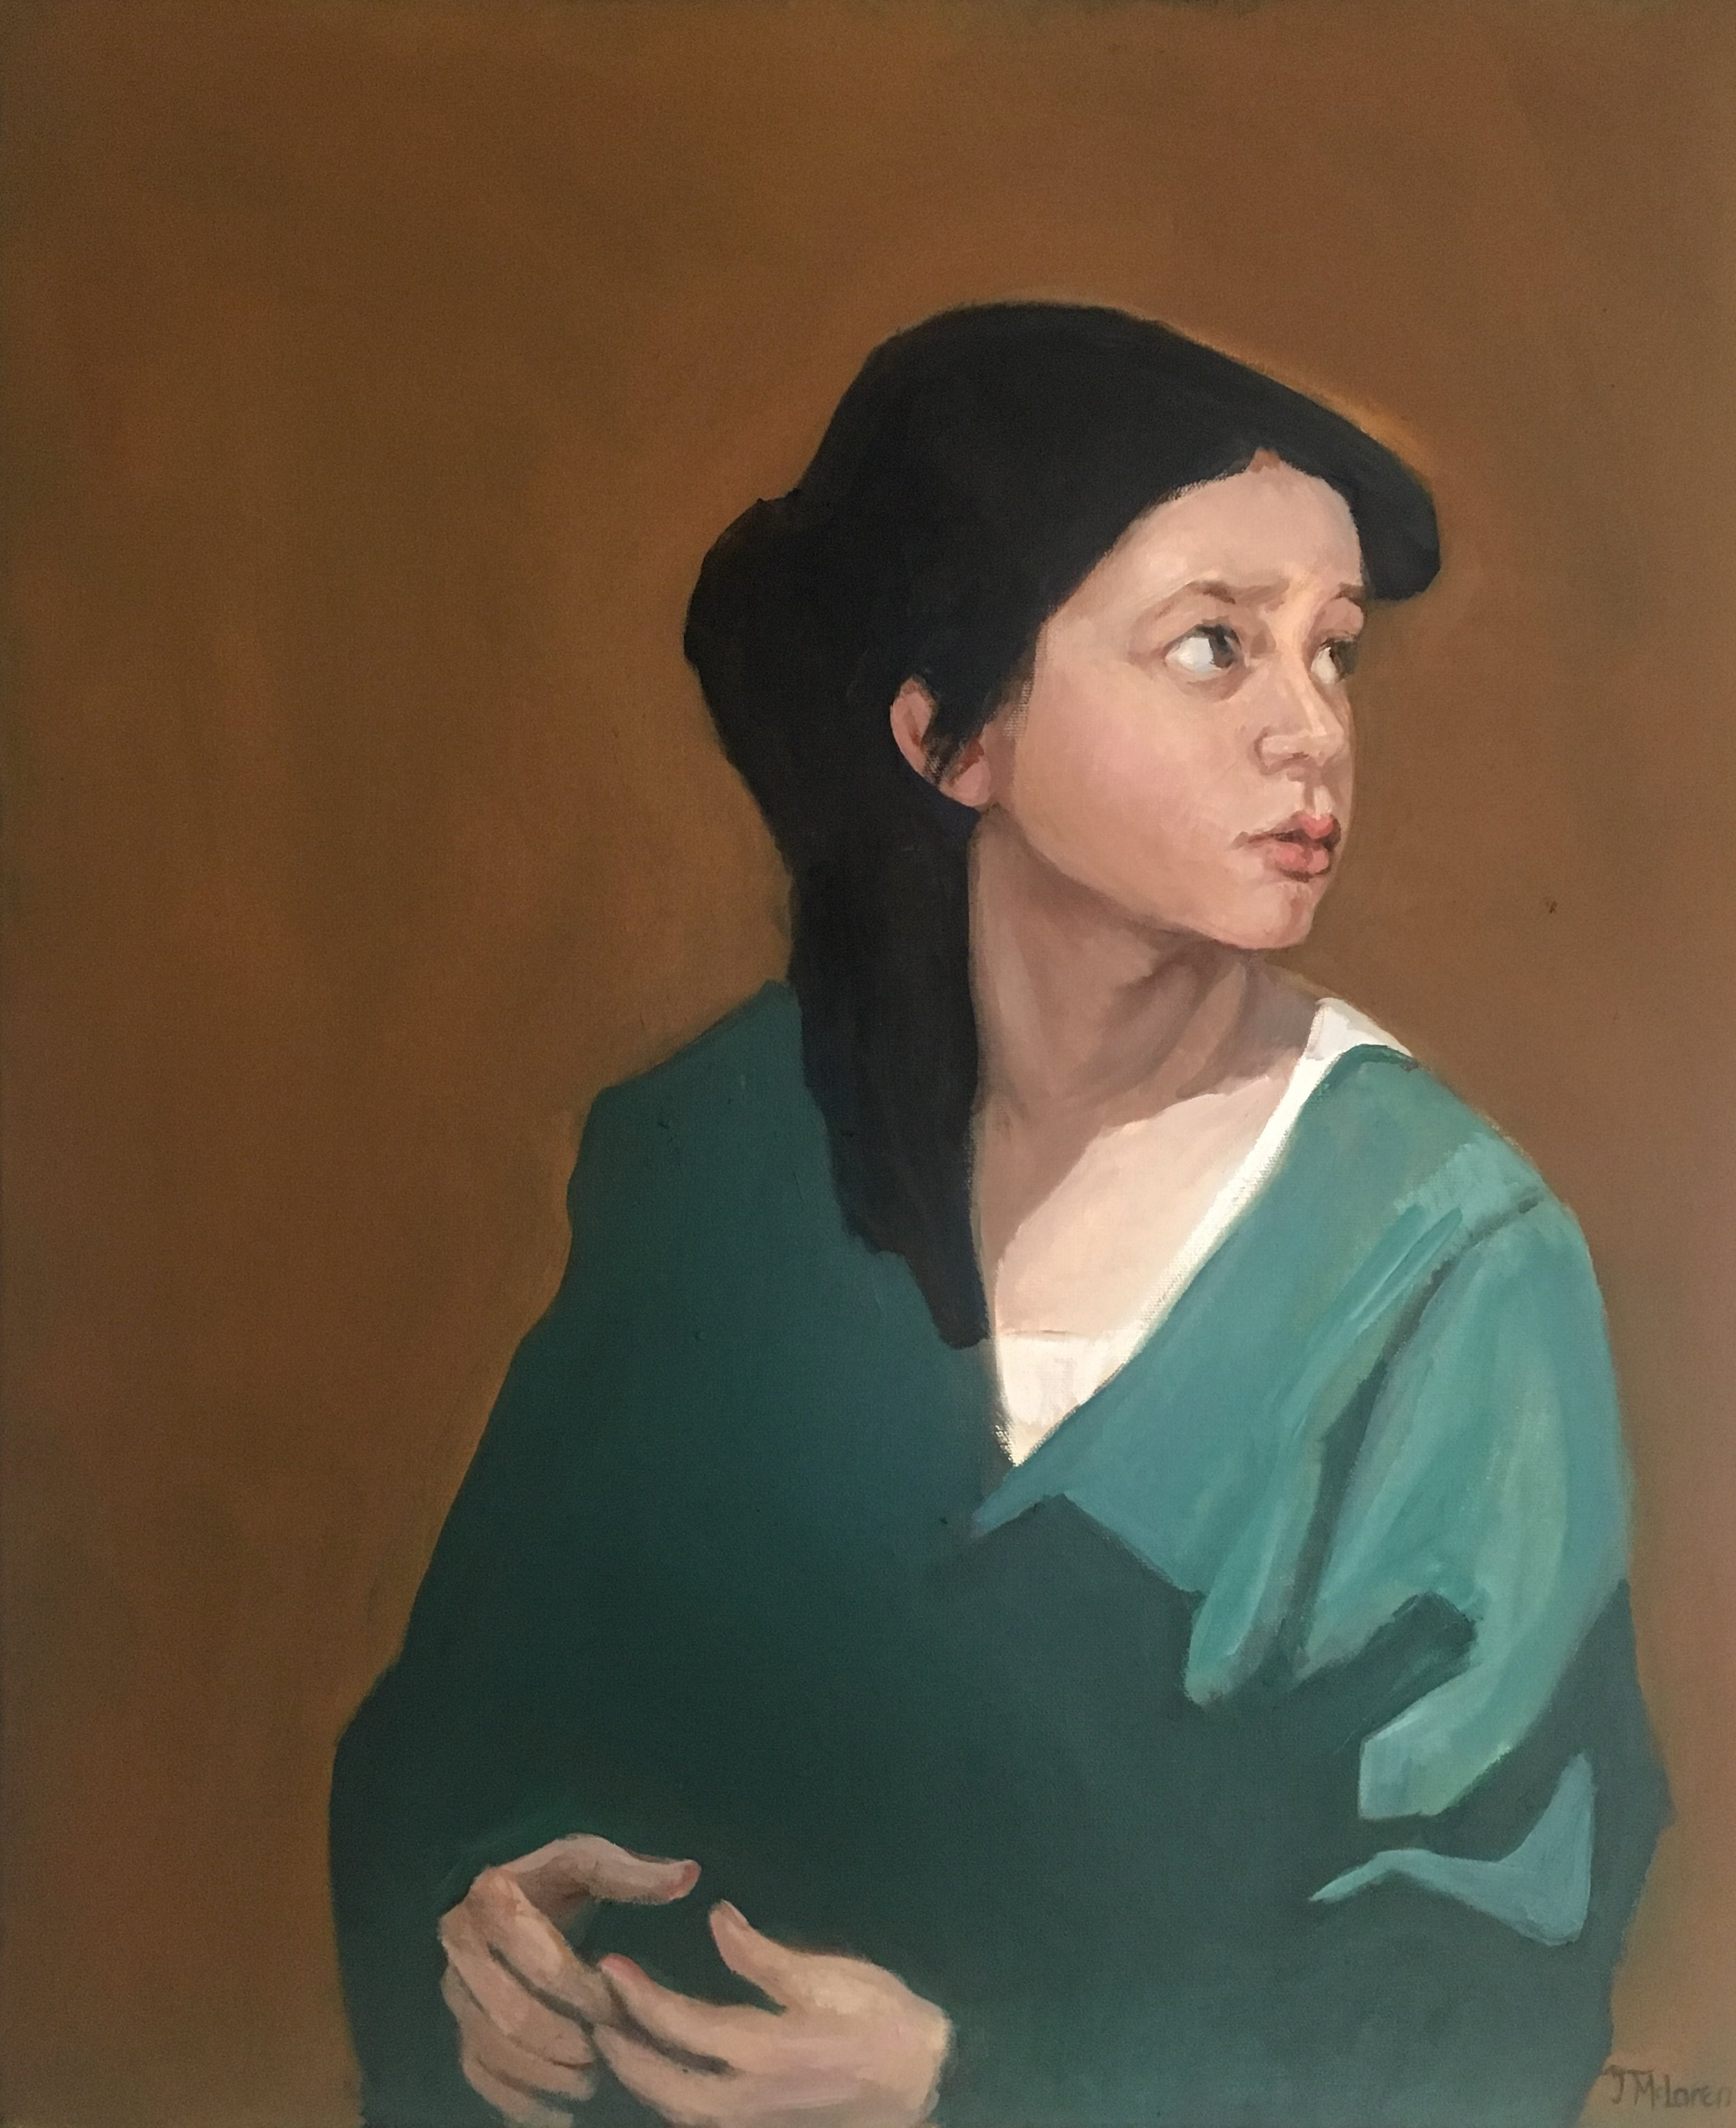 The reference for this portrait came from the town of Sulmona in Italy; a little girl waiting for the beginning of a parade that, in the end, was canceled because of rain. The flat shapes in the painting contrast with the modelling of her face and the figure's position on the canvas - turning to her right- creates tension and leaves the viewer wondering what is happening that affects her so.